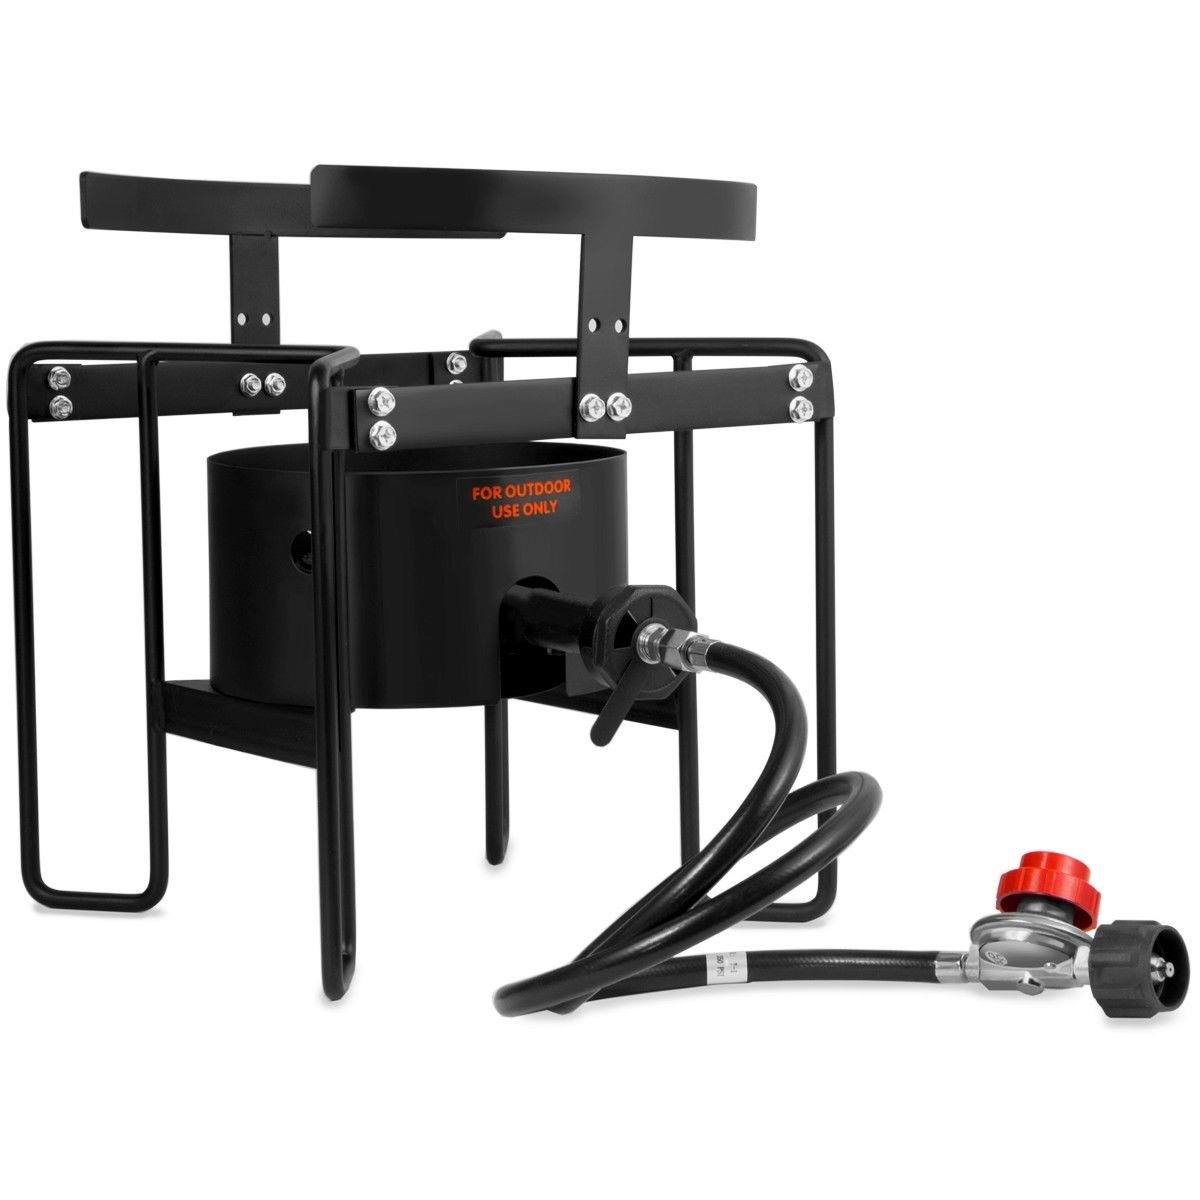 KCHEX>20psi Turkey Fryer Stand Gas Propane Stove Single Burner Outdoor Cooking Camping>Outdoor Portable high Pressure Stove is Ideal for Providing Cooking Solution for You and Your Family.